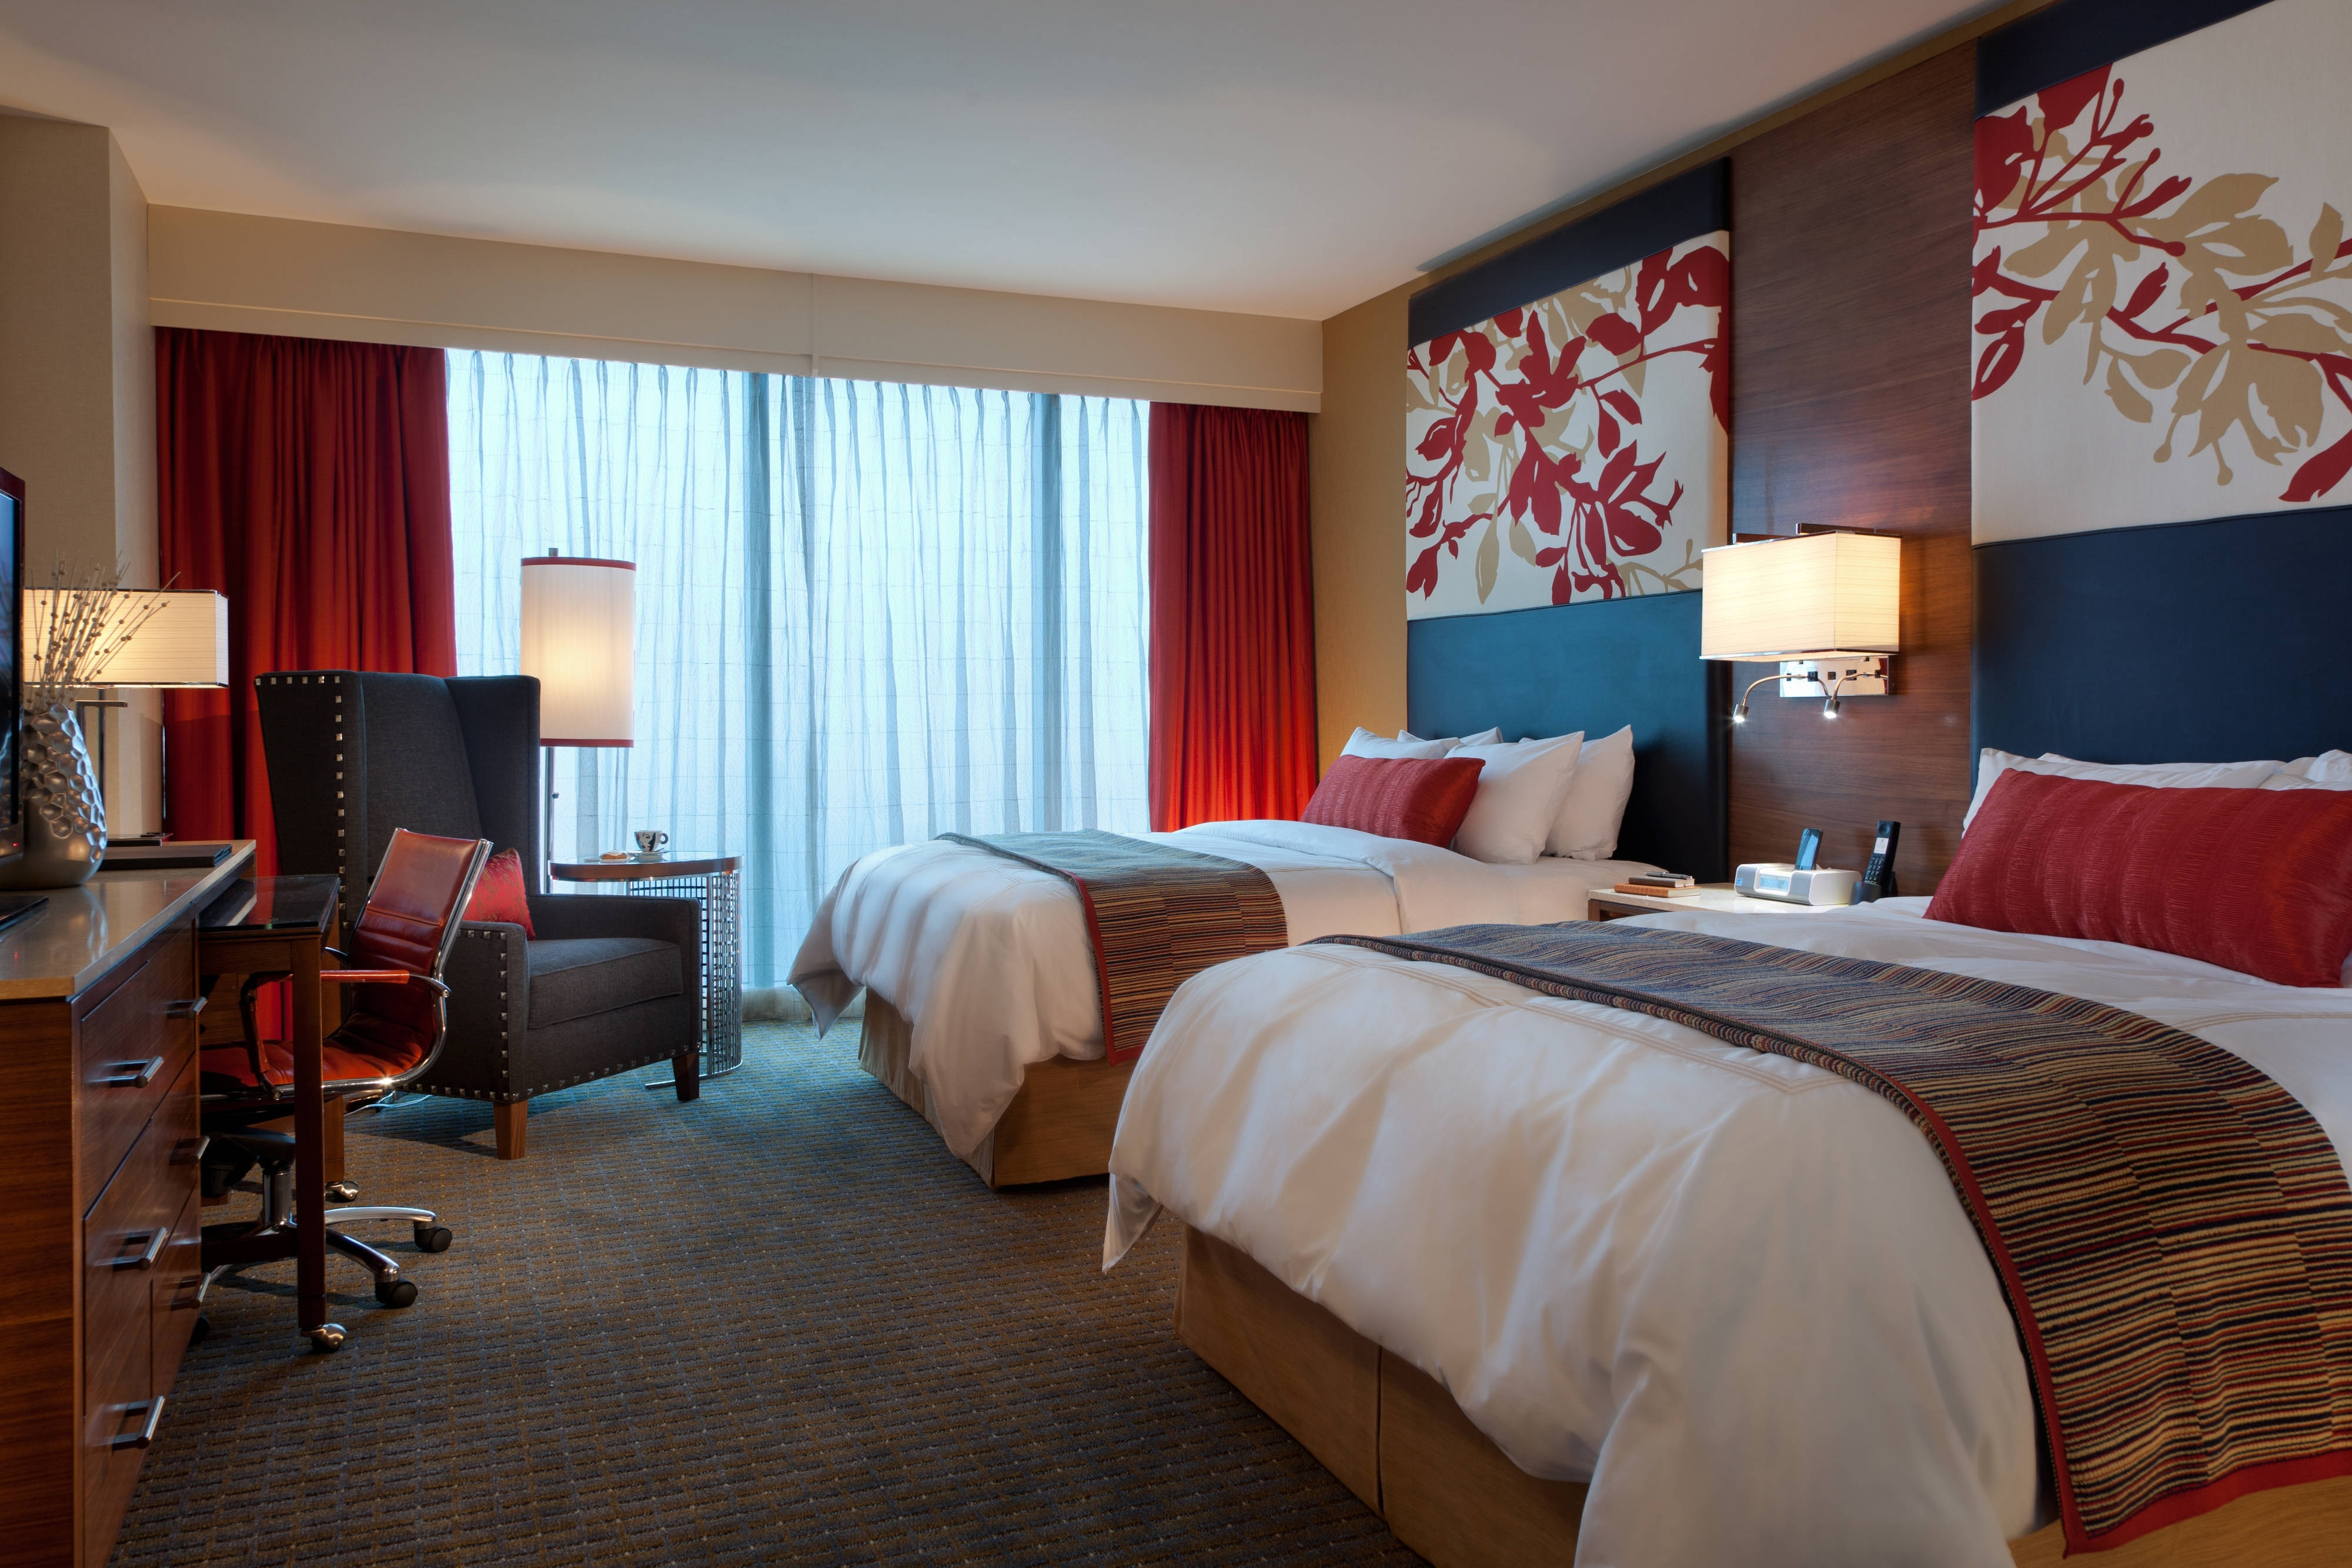 Best Hotel Rooms Indianapolis